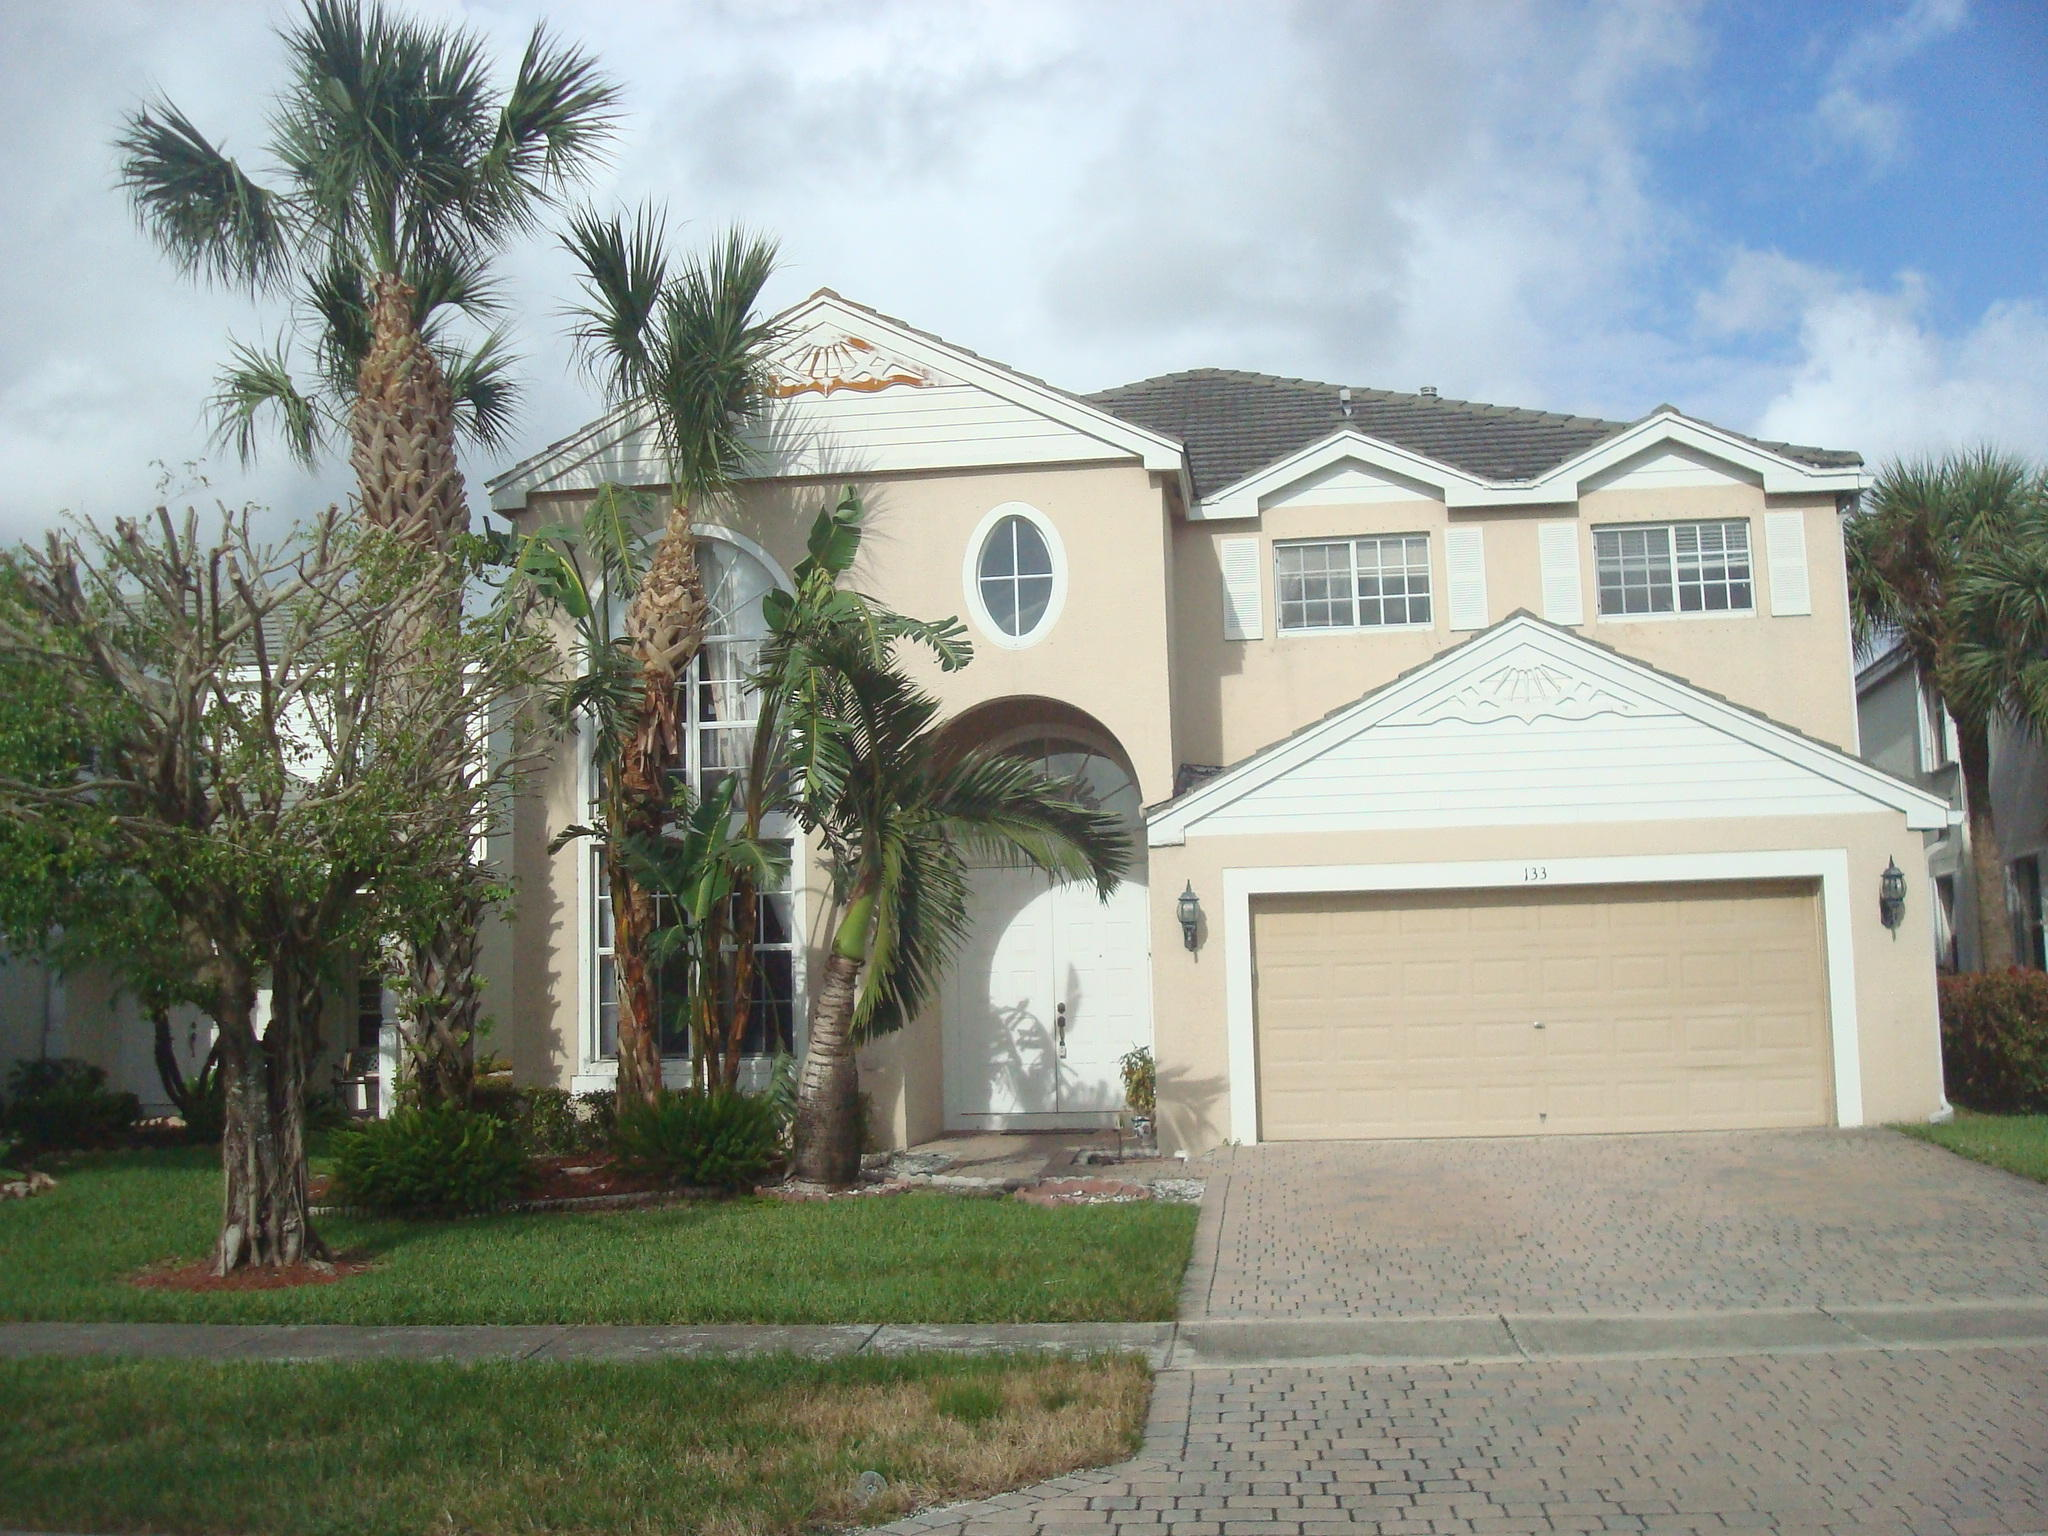 133 Kensington Way Royal Palm Beach, FL 33414